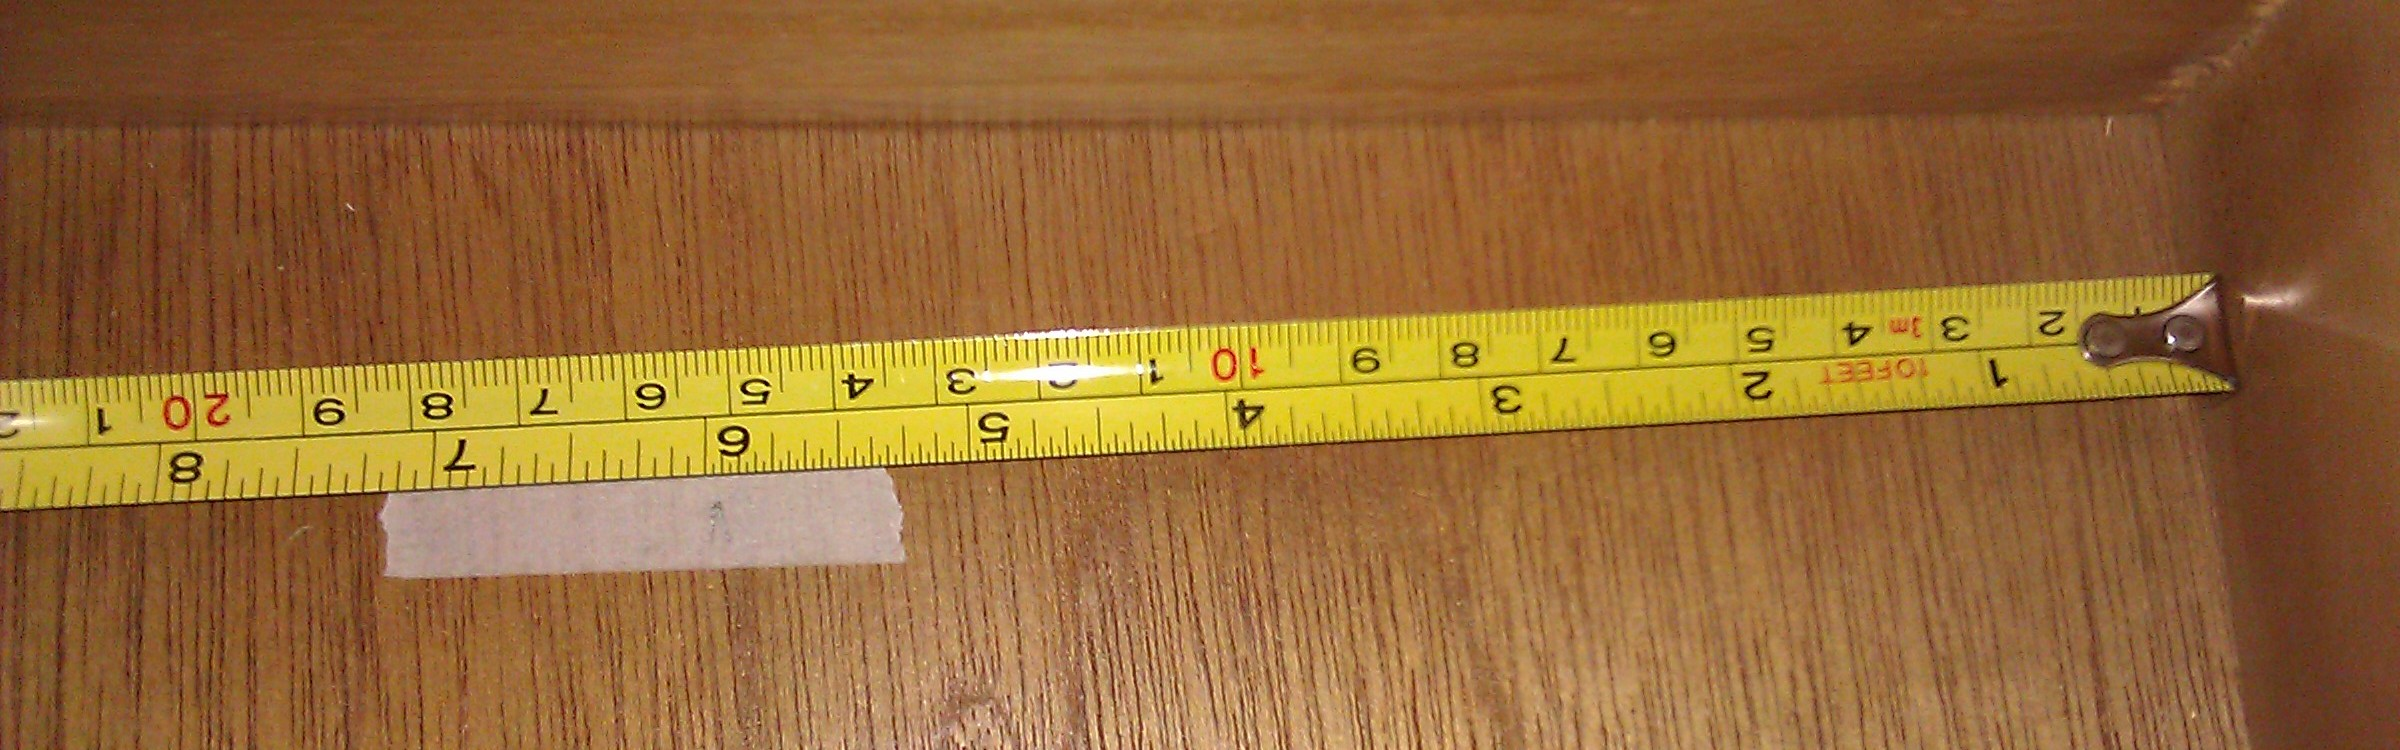 worksheet Reading Tape Measure secrets of the tape measure home improvement stack exchange blog accurate inside measurements